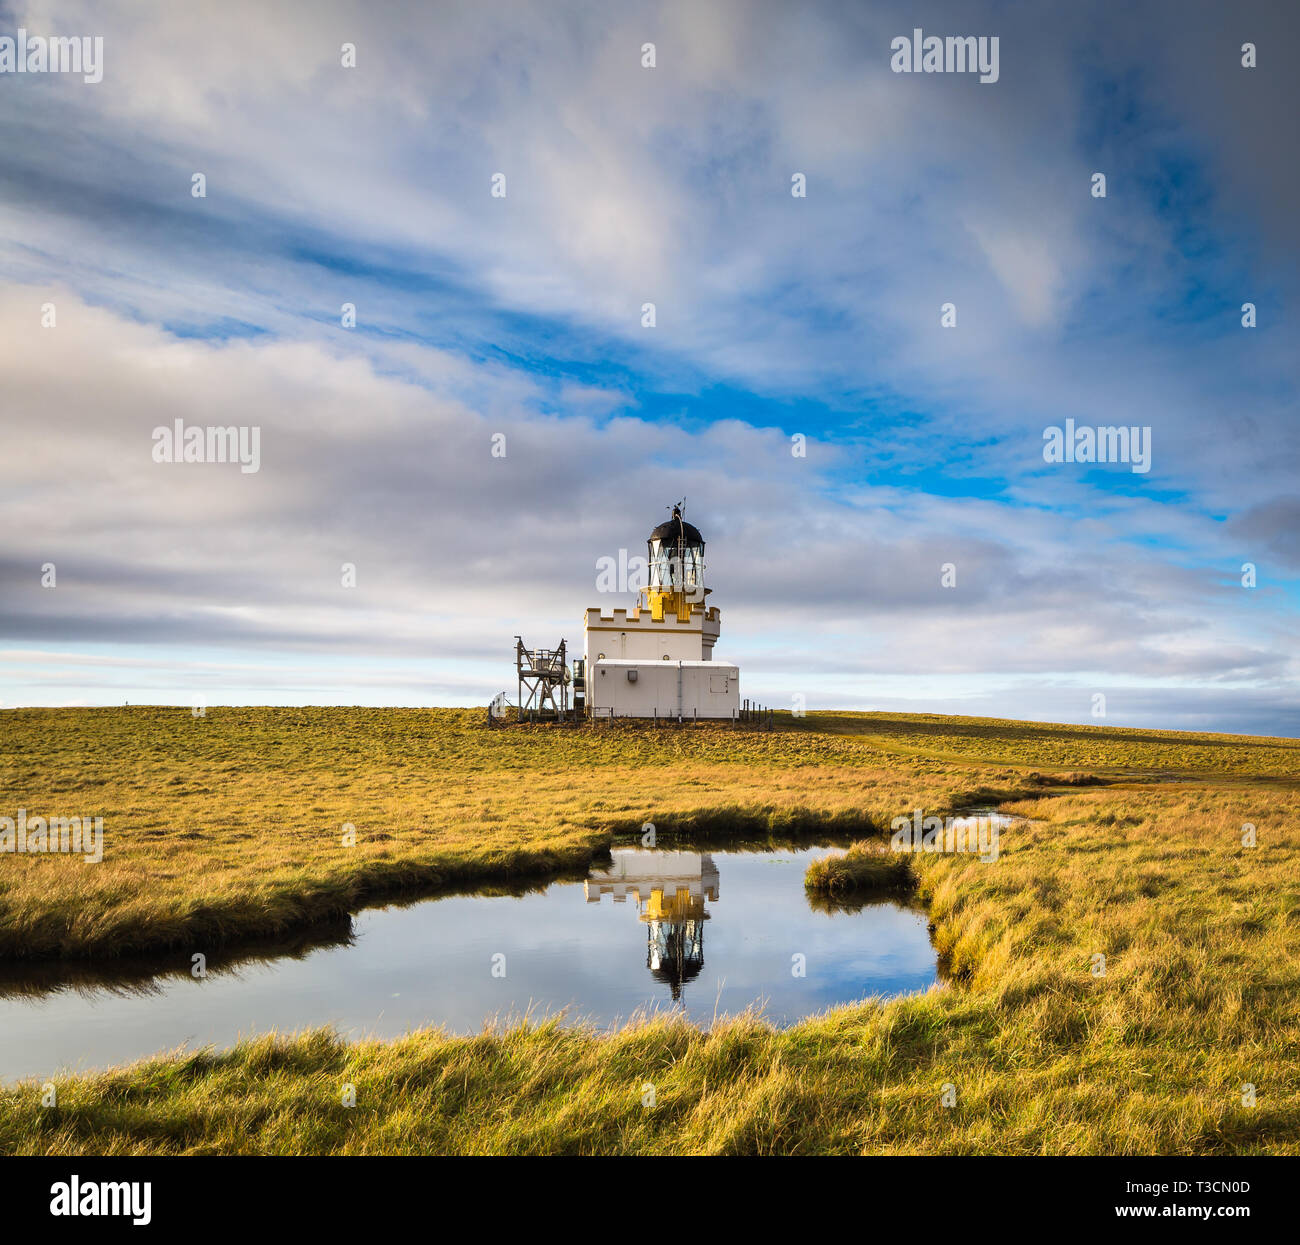 The Stevenson lighthouse on the Brough of Birsay, Orkney Islands. - Stock Image